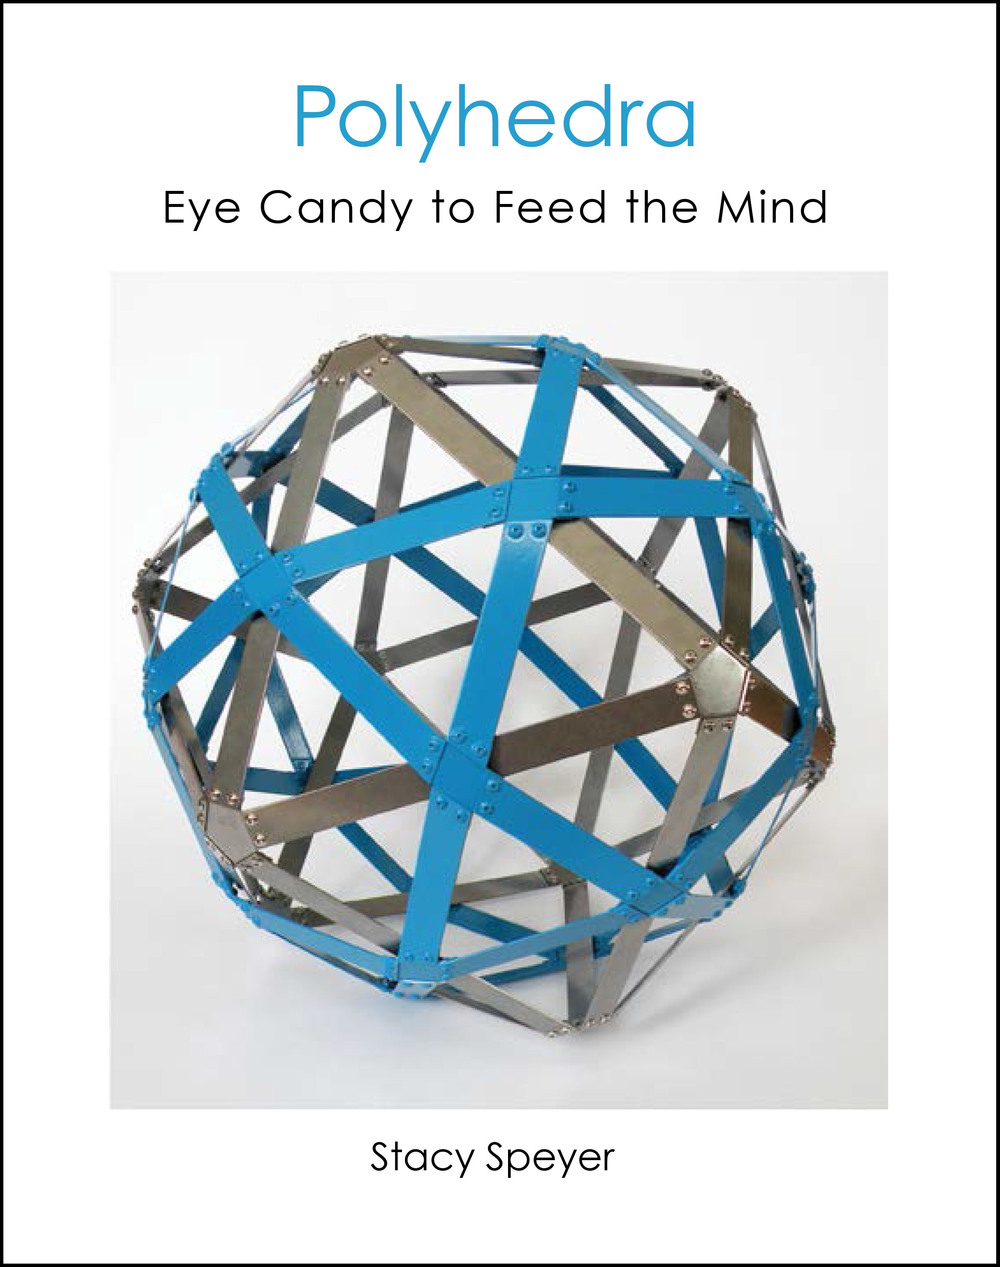 Polyhedra_Eye Candy Cover-Jan30.jpg